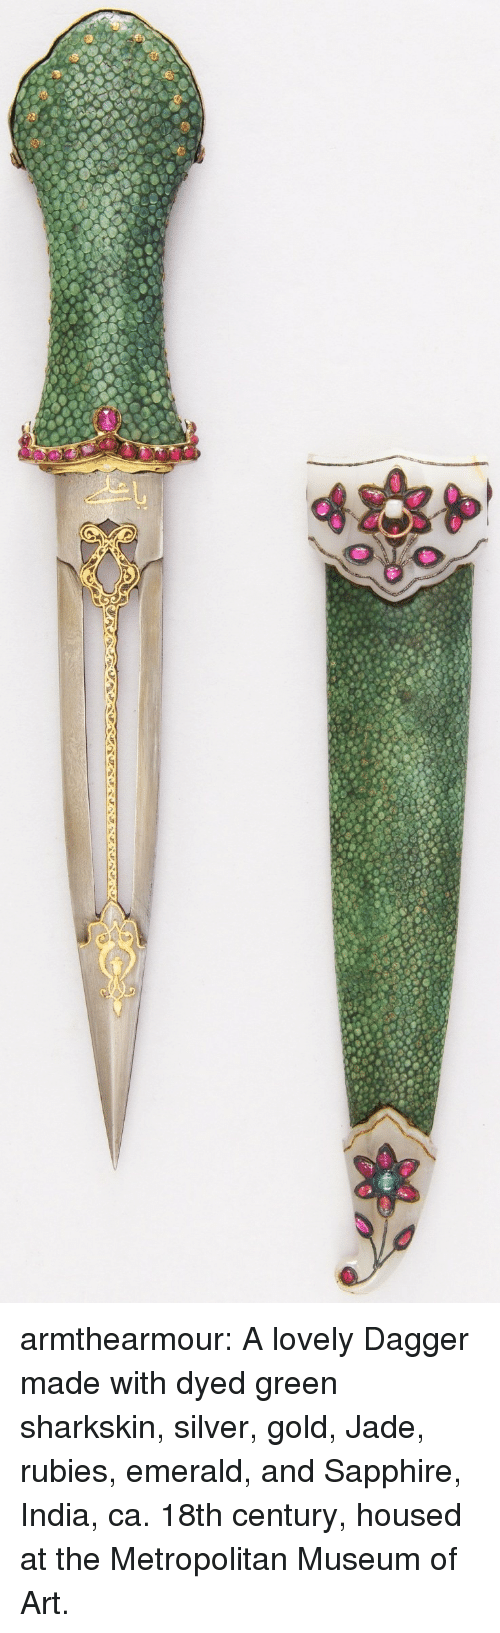 18Th Century: armthearmour:  A lovely Dagger made with dyed green sharkskin, silver, gold, Jade, rubies, emerald, and Sapphire, India, ca. 18th century, housed at the Metropolitan Museum of Art.